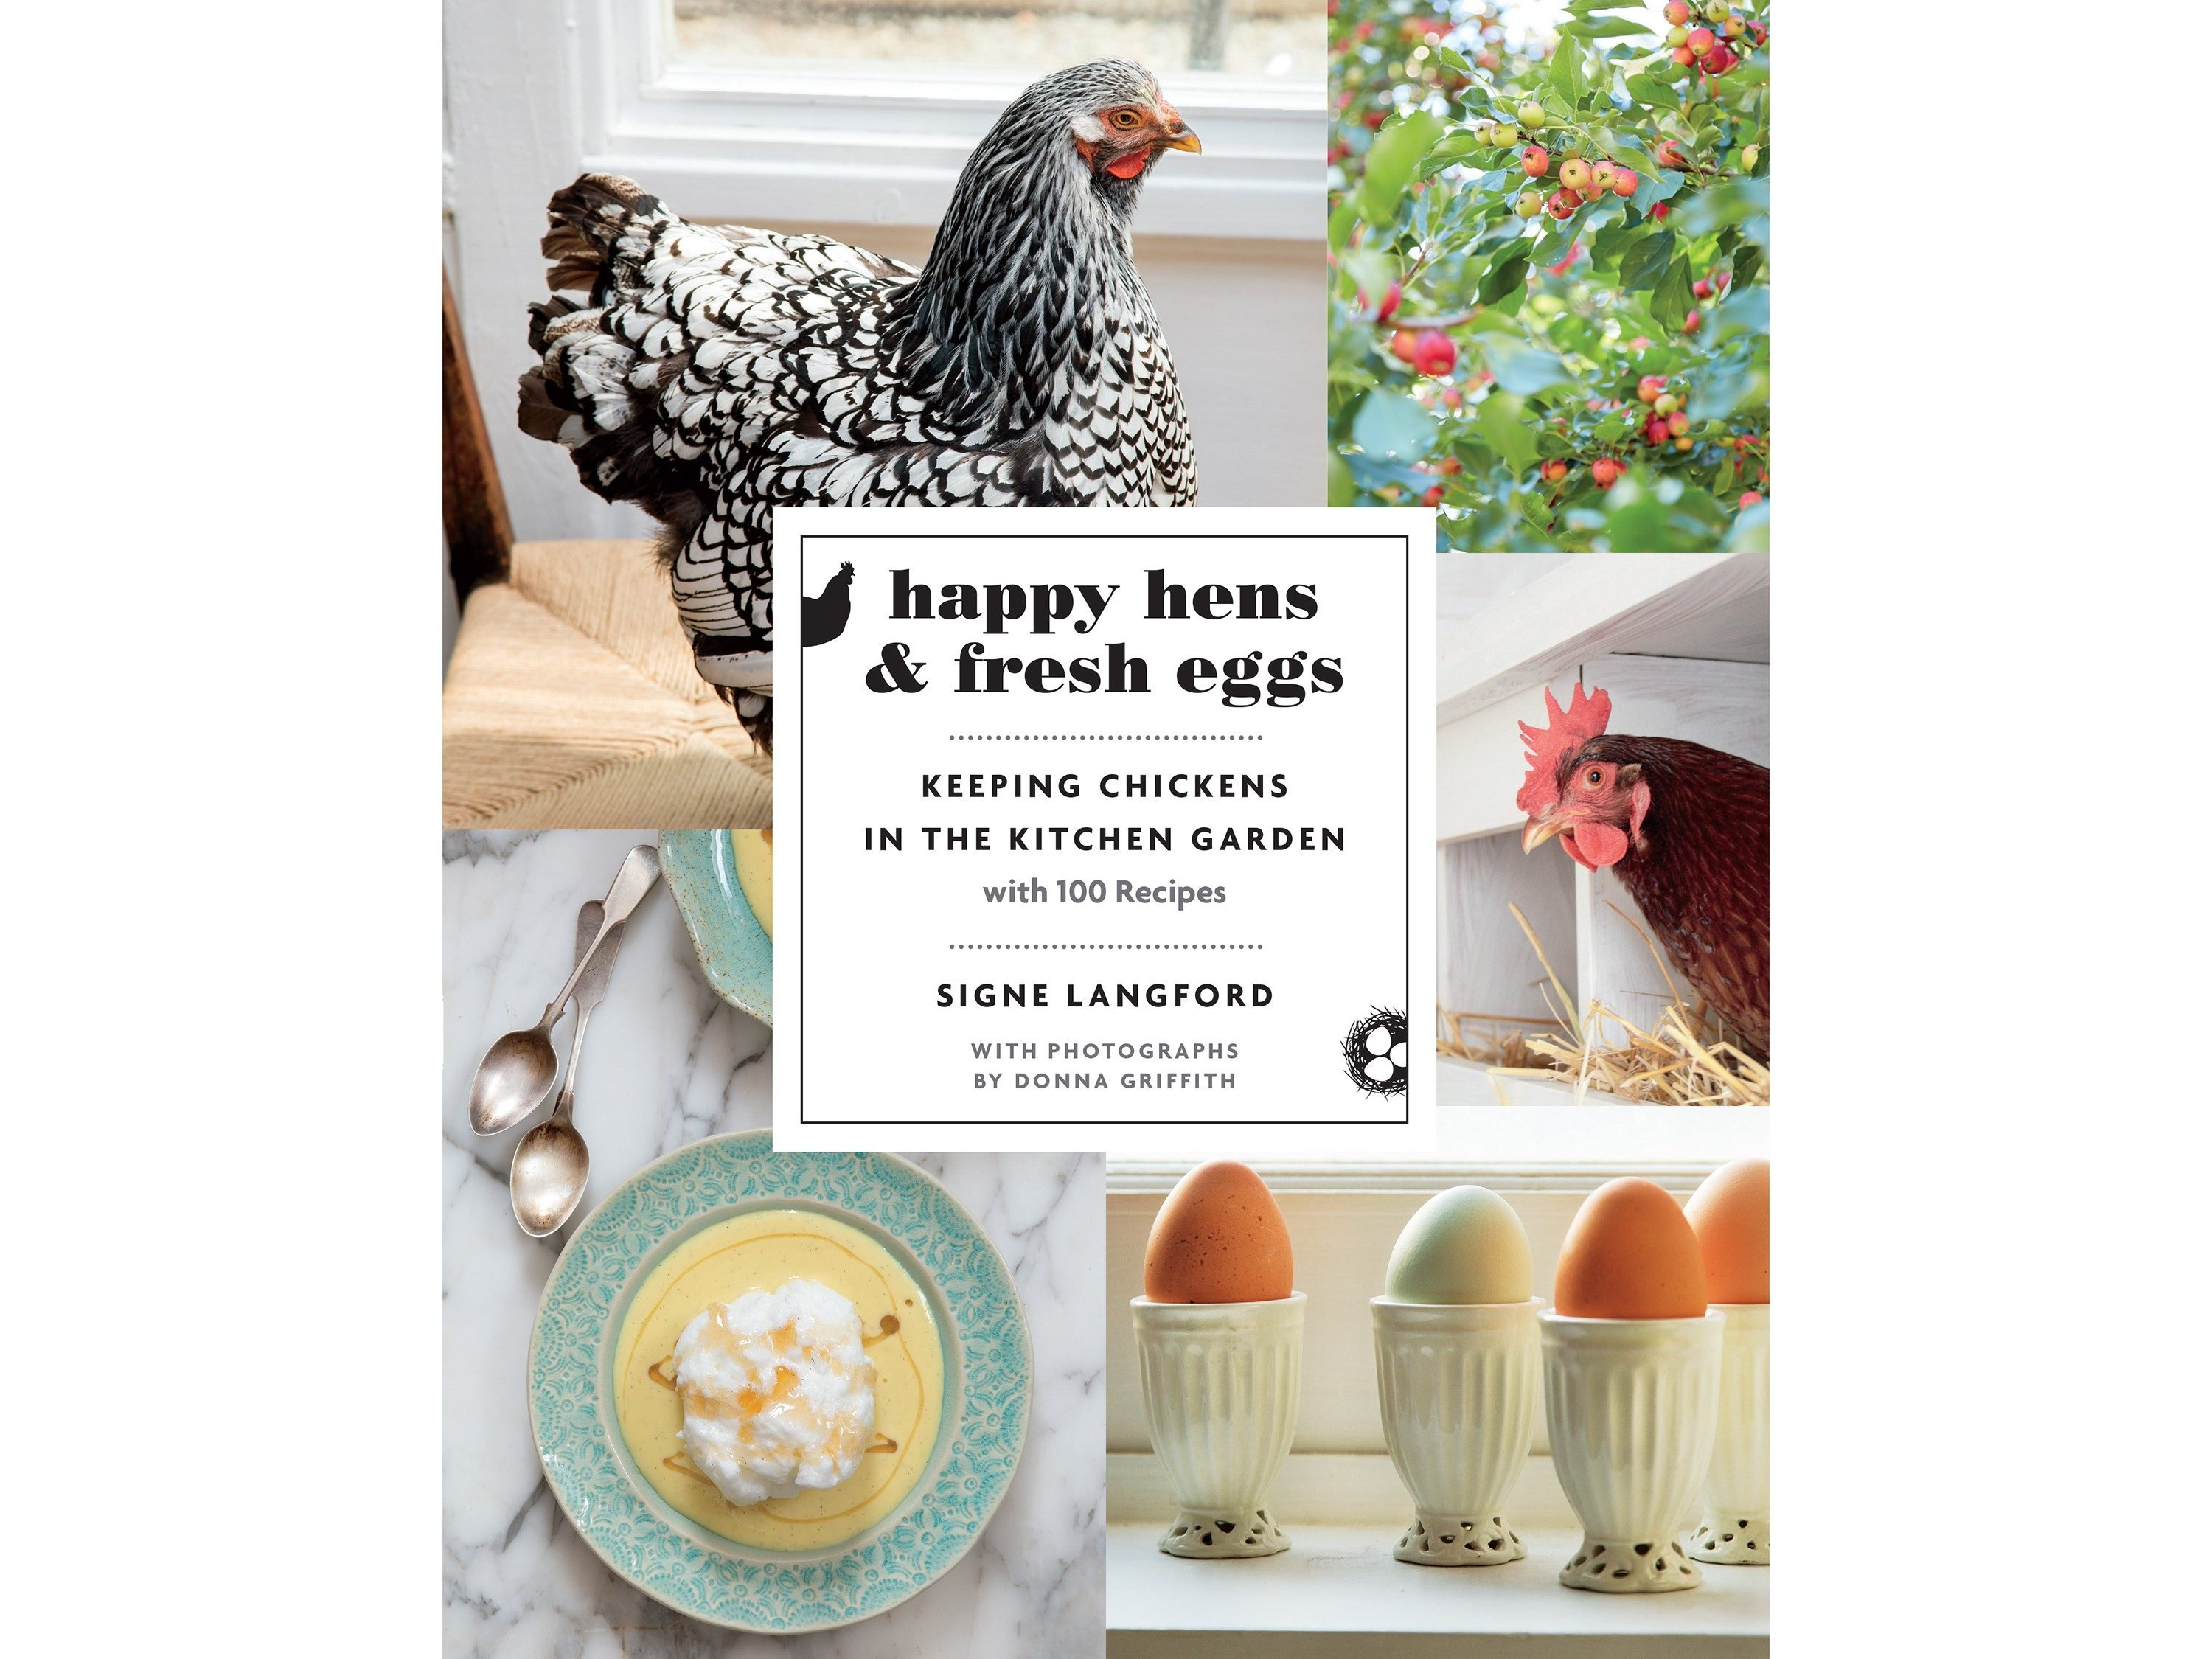 Further reading: Happy Hens & Fresh Eggs